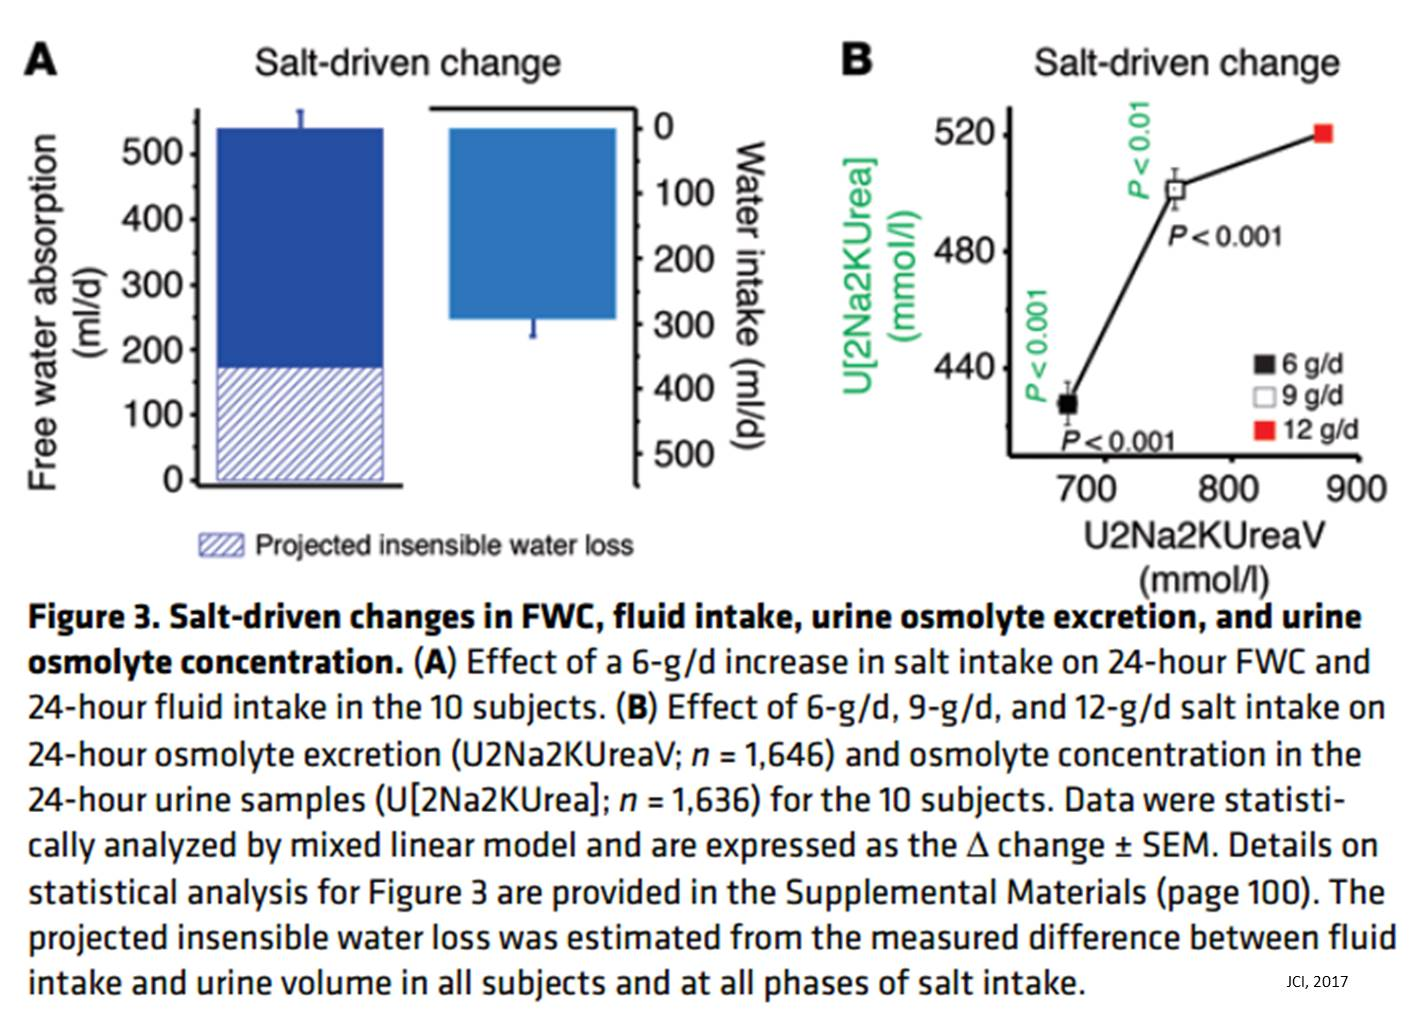 Increased salt consumption induces body water conservation and decreases fluid intake